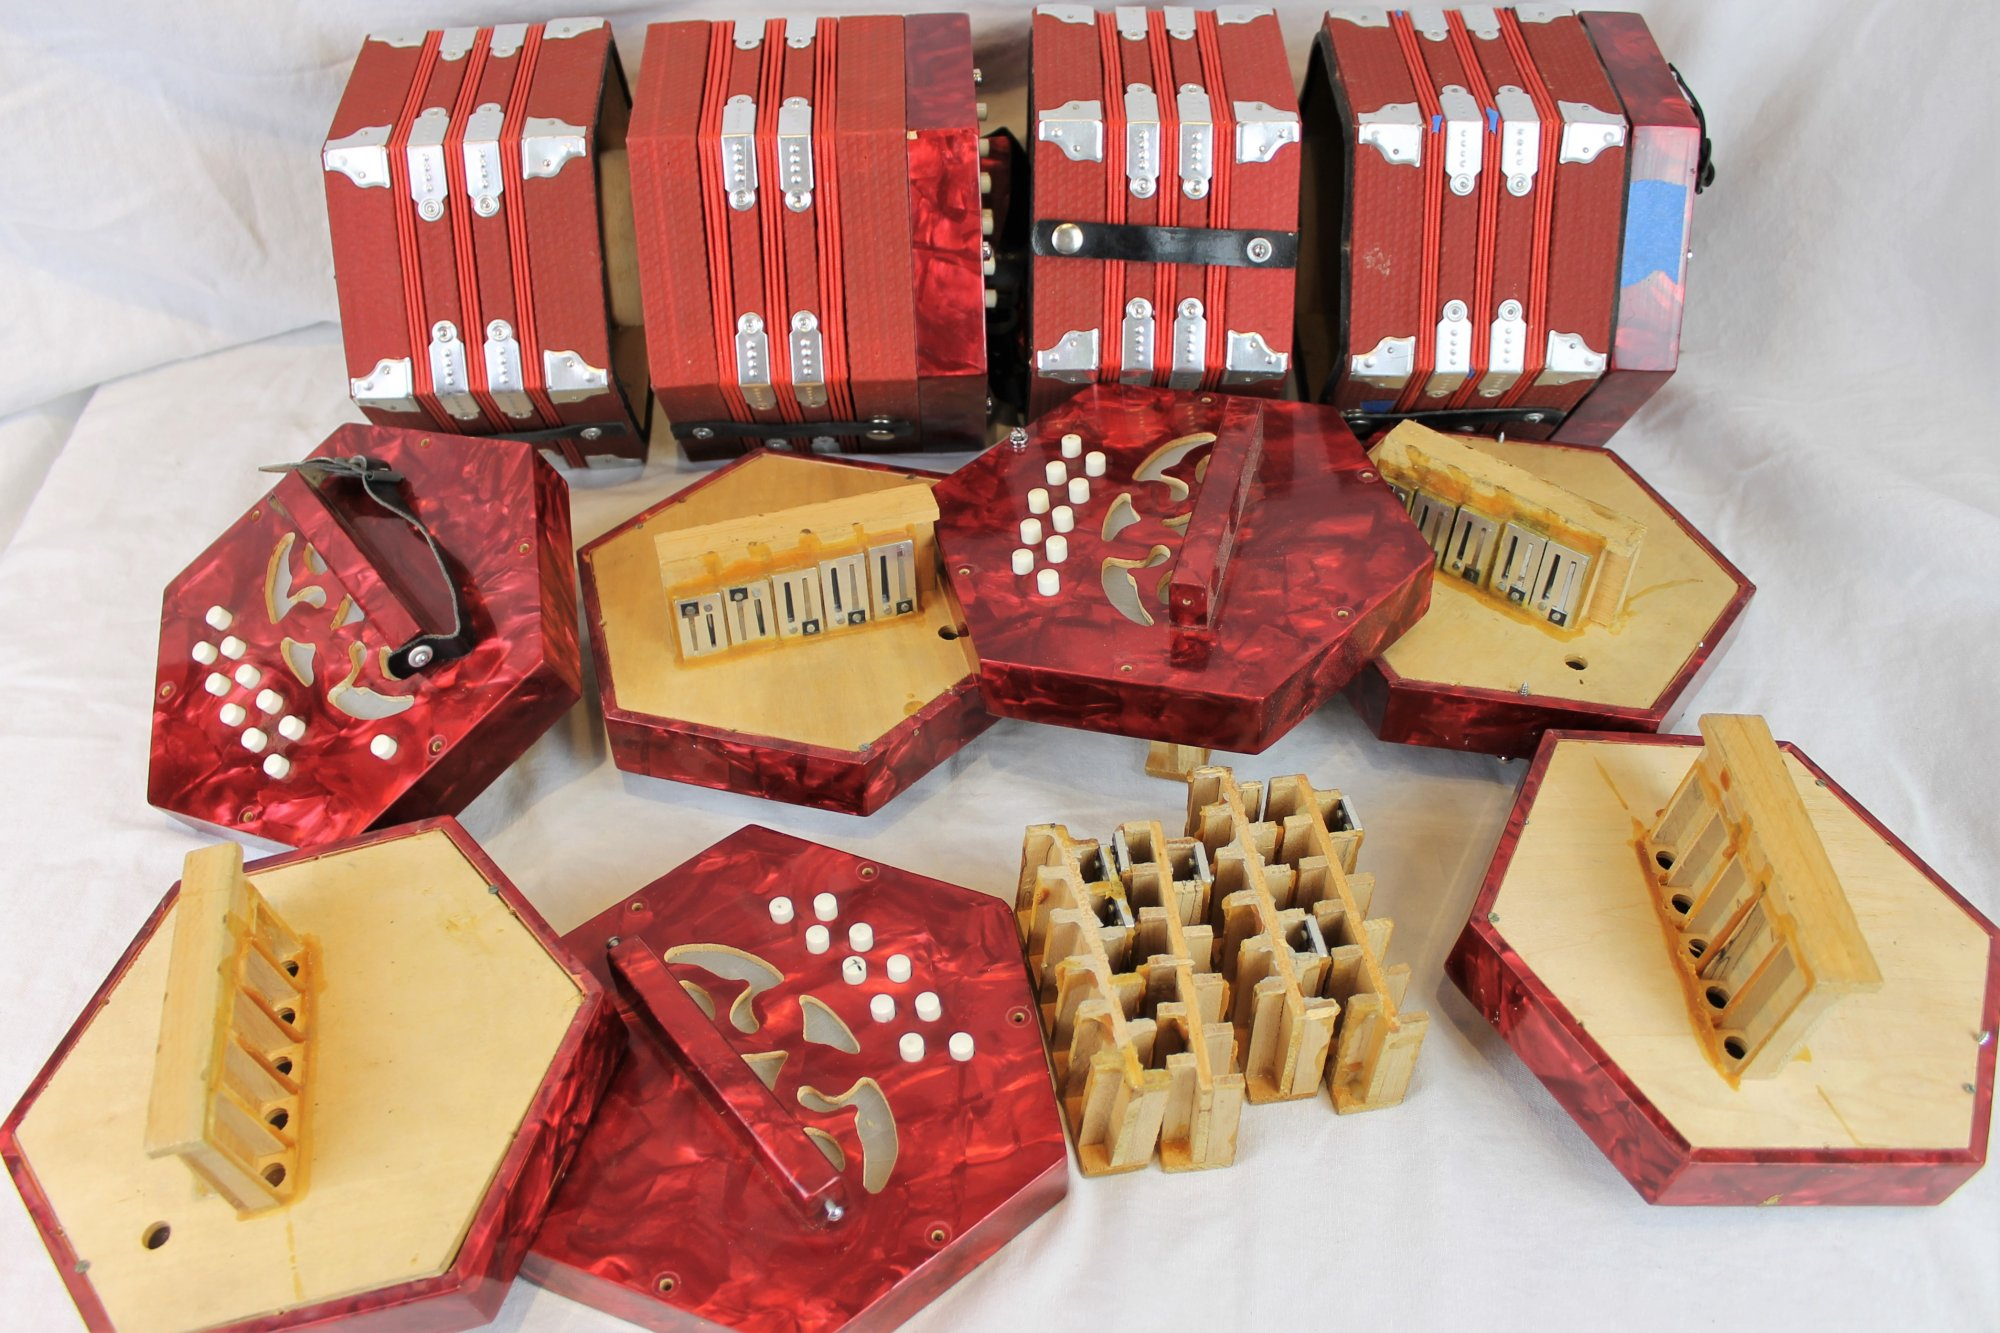 Lot of Concertina Parts - For Parts or Repair